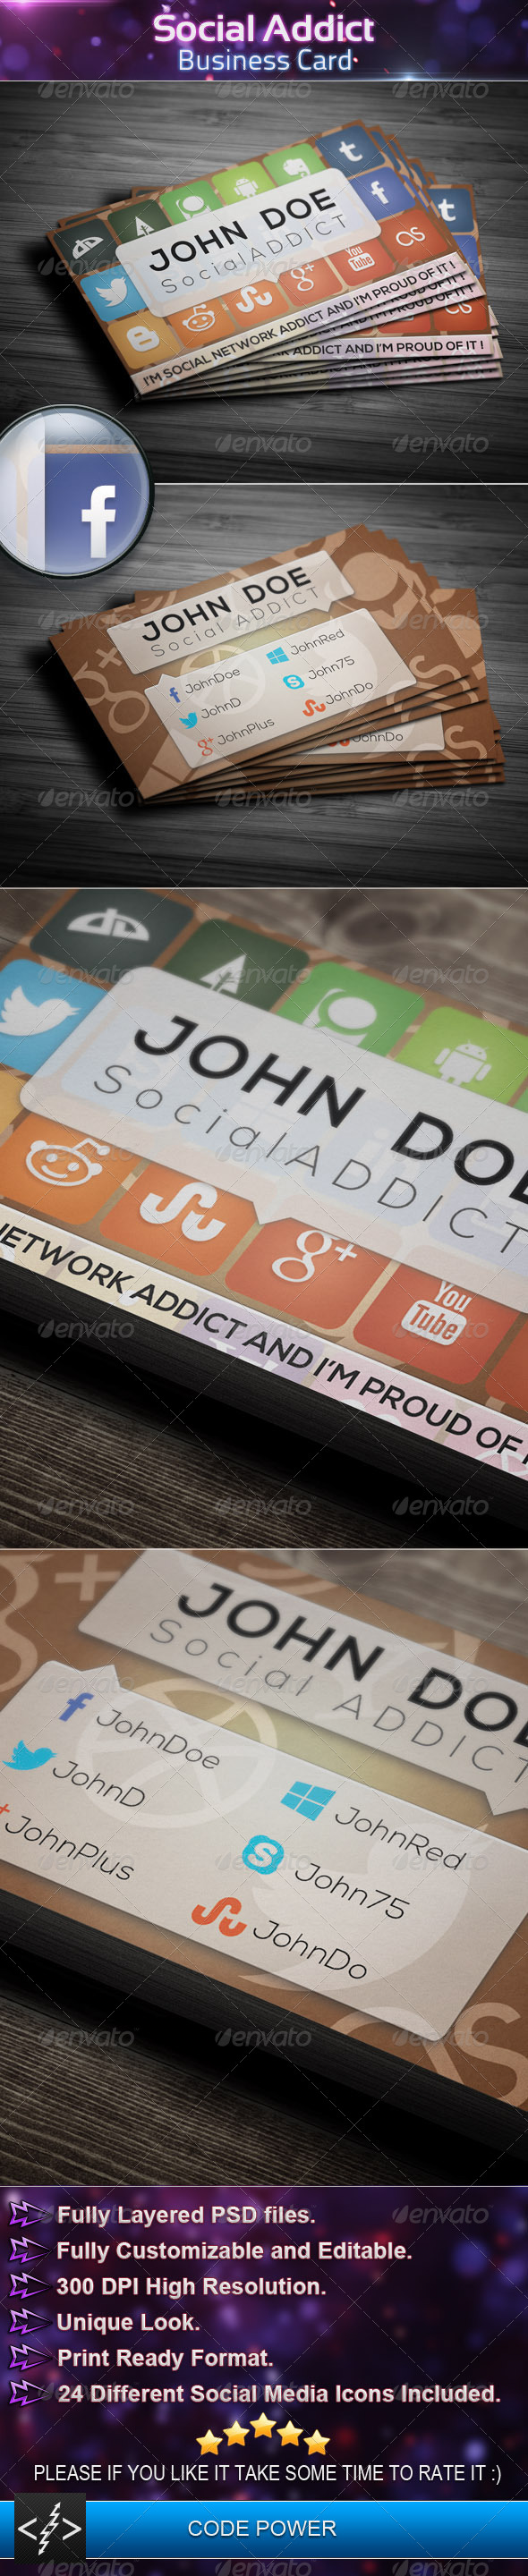 GraphicRiver Social Addict Business Card 4359487